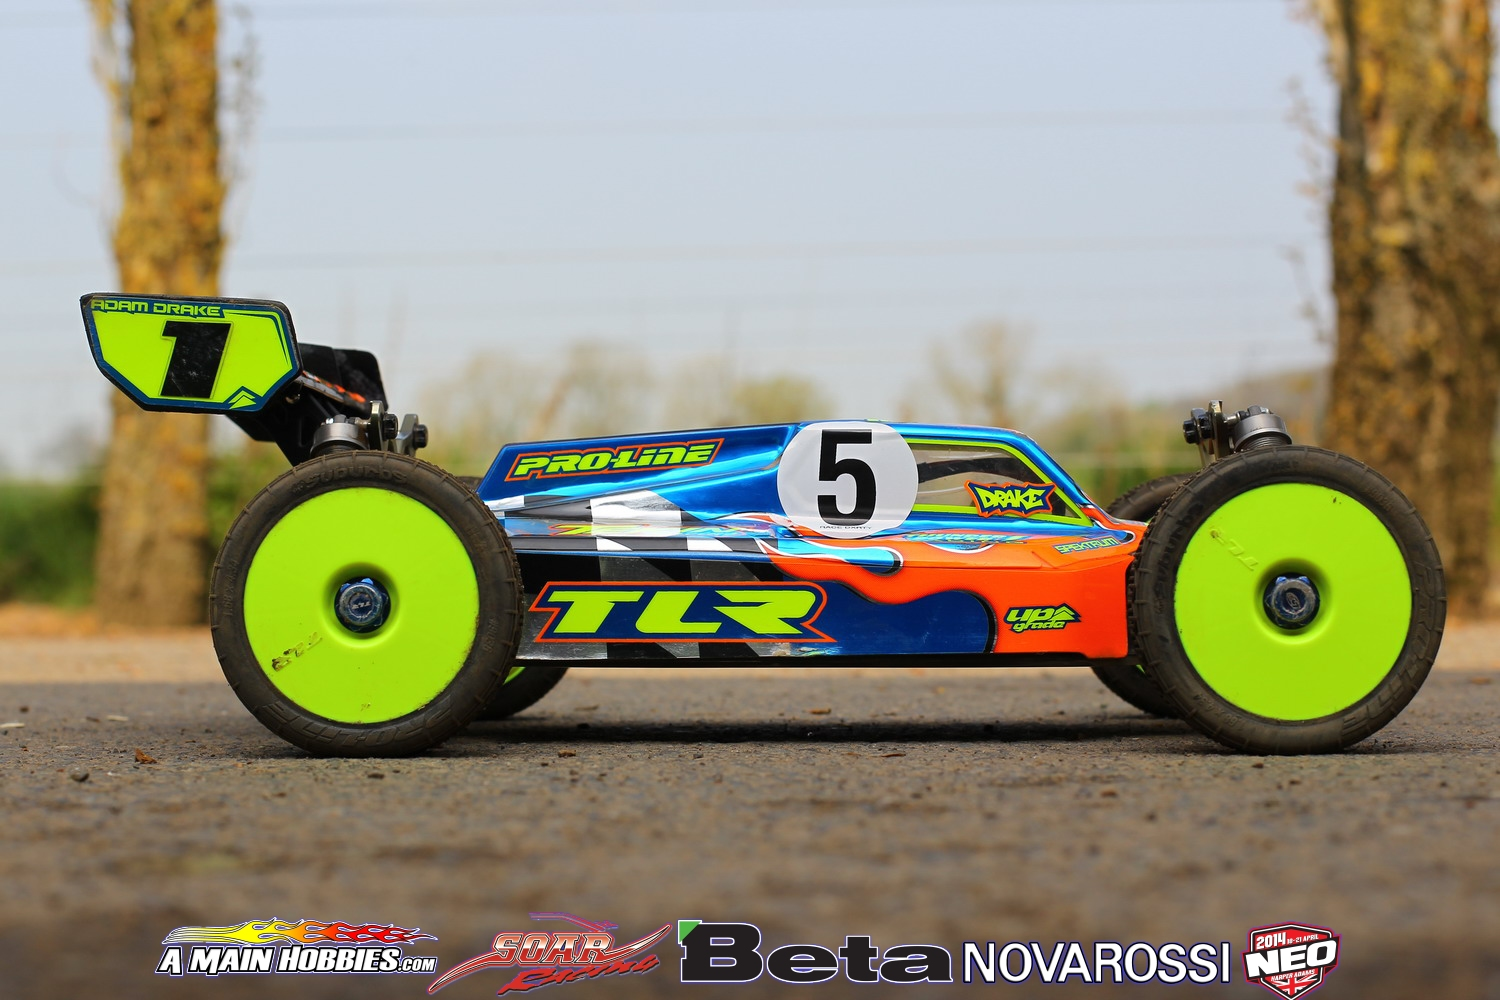 rc buggy with 83 on B64 NeilCragg Trencin2017020305 as well 83 additionally Rc Neo Fighter Buggy 58587 further Index in addition Showroom.